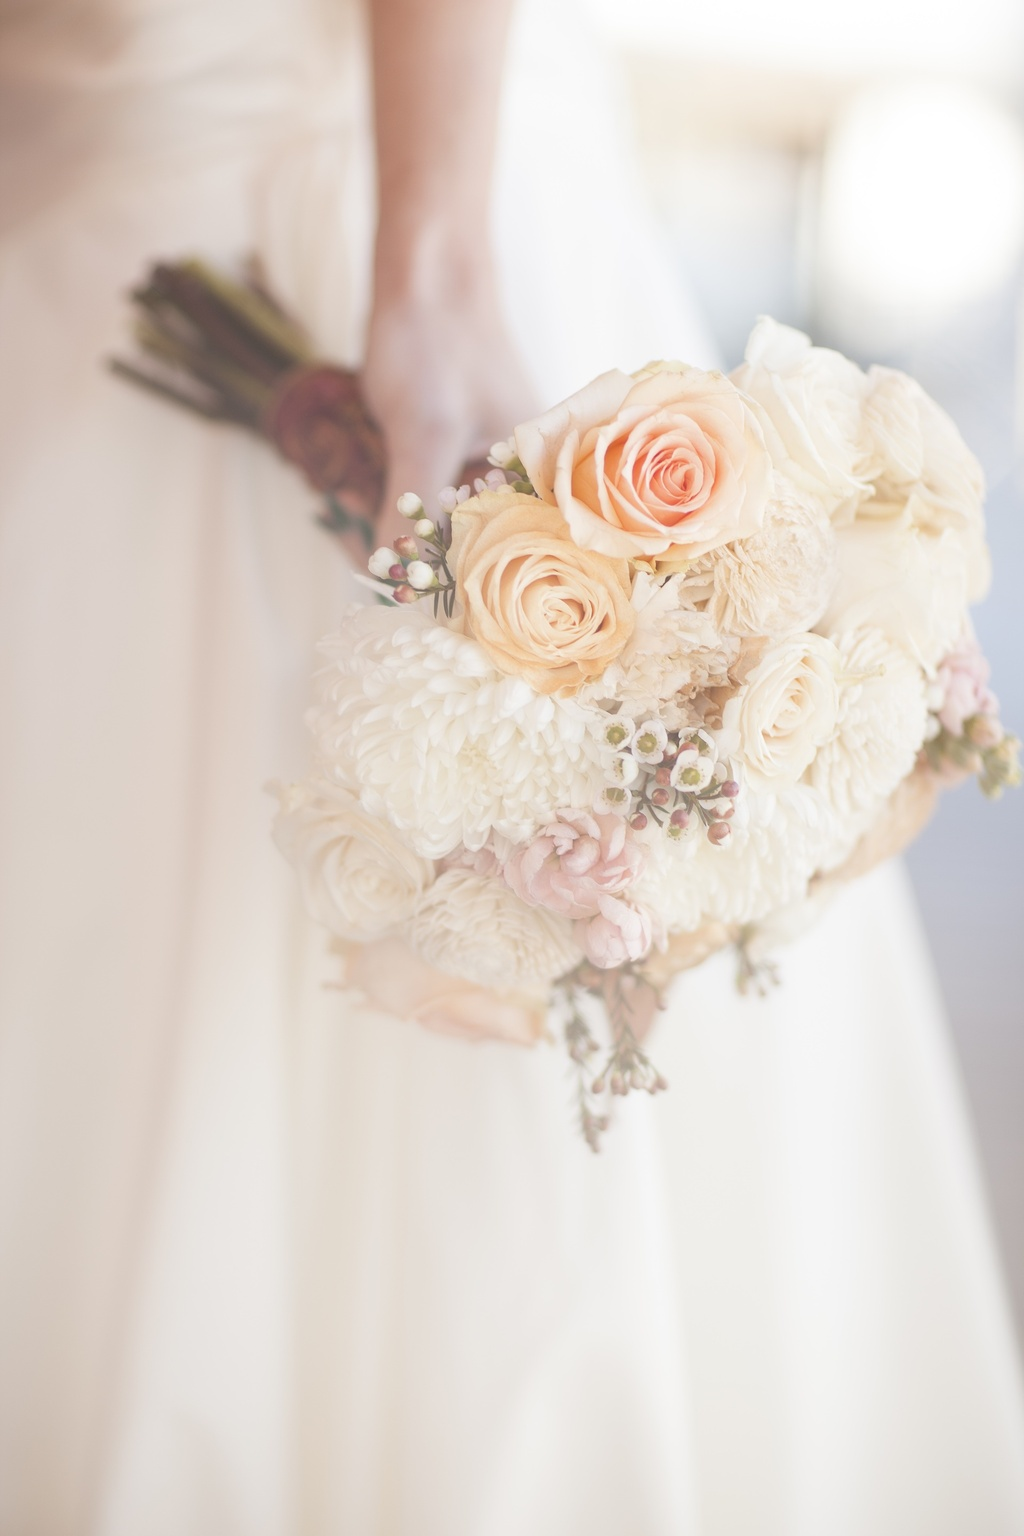 Pale-peach-and-ivory-wedding-bouquet-for-romantic-brides.full